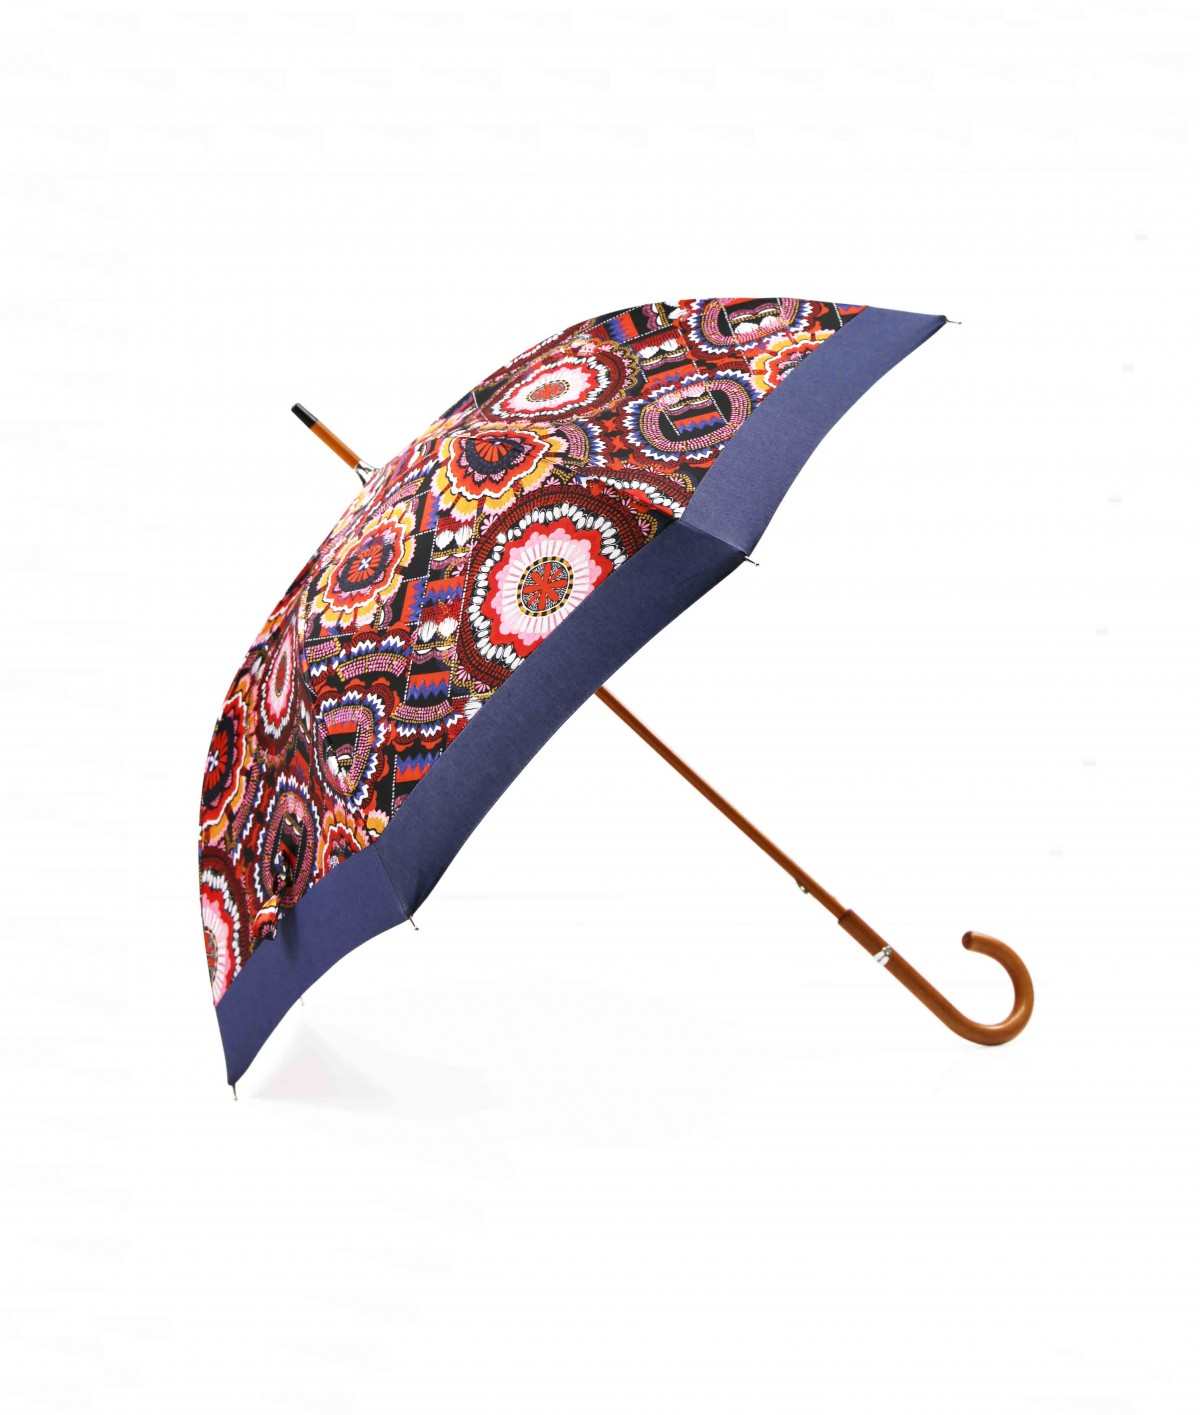 """→ """"Fancy Assembly"""" Umbrella - Long Manual N°1 - Made in France by the French Umbrellas Manufacturer Maison Pierre Vaux"""